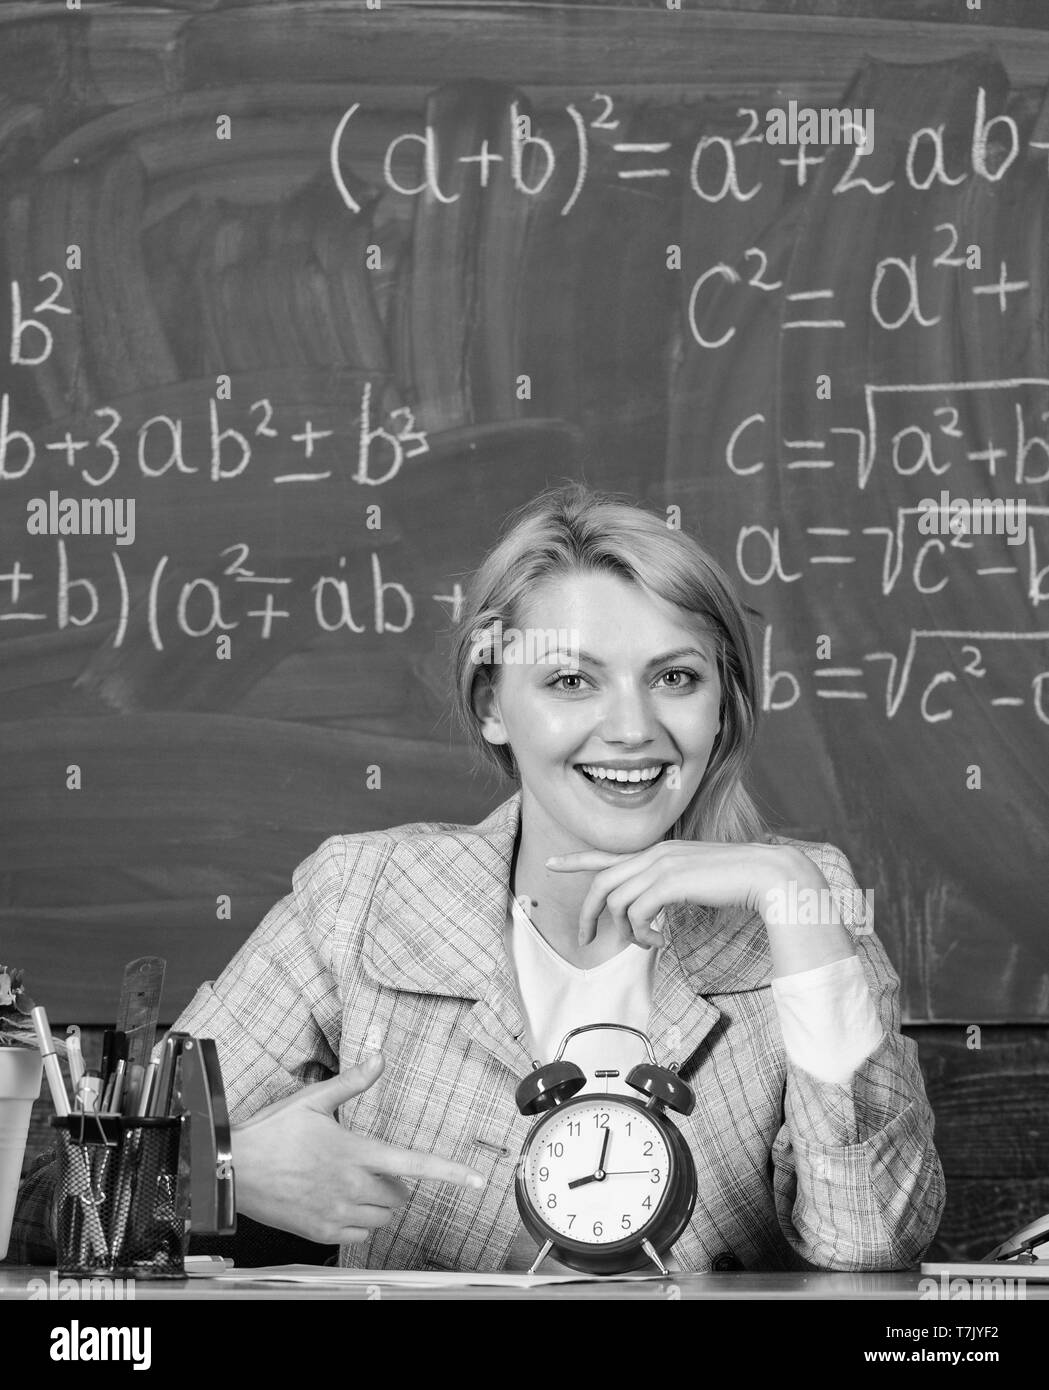 Confidence and punctuality. Study and education. Modern school. Knowledge day. Back to school. Teachers day. School. Home schooling. happy woman. woman in classroom. teacher with alarm clock. Time - Stock Image